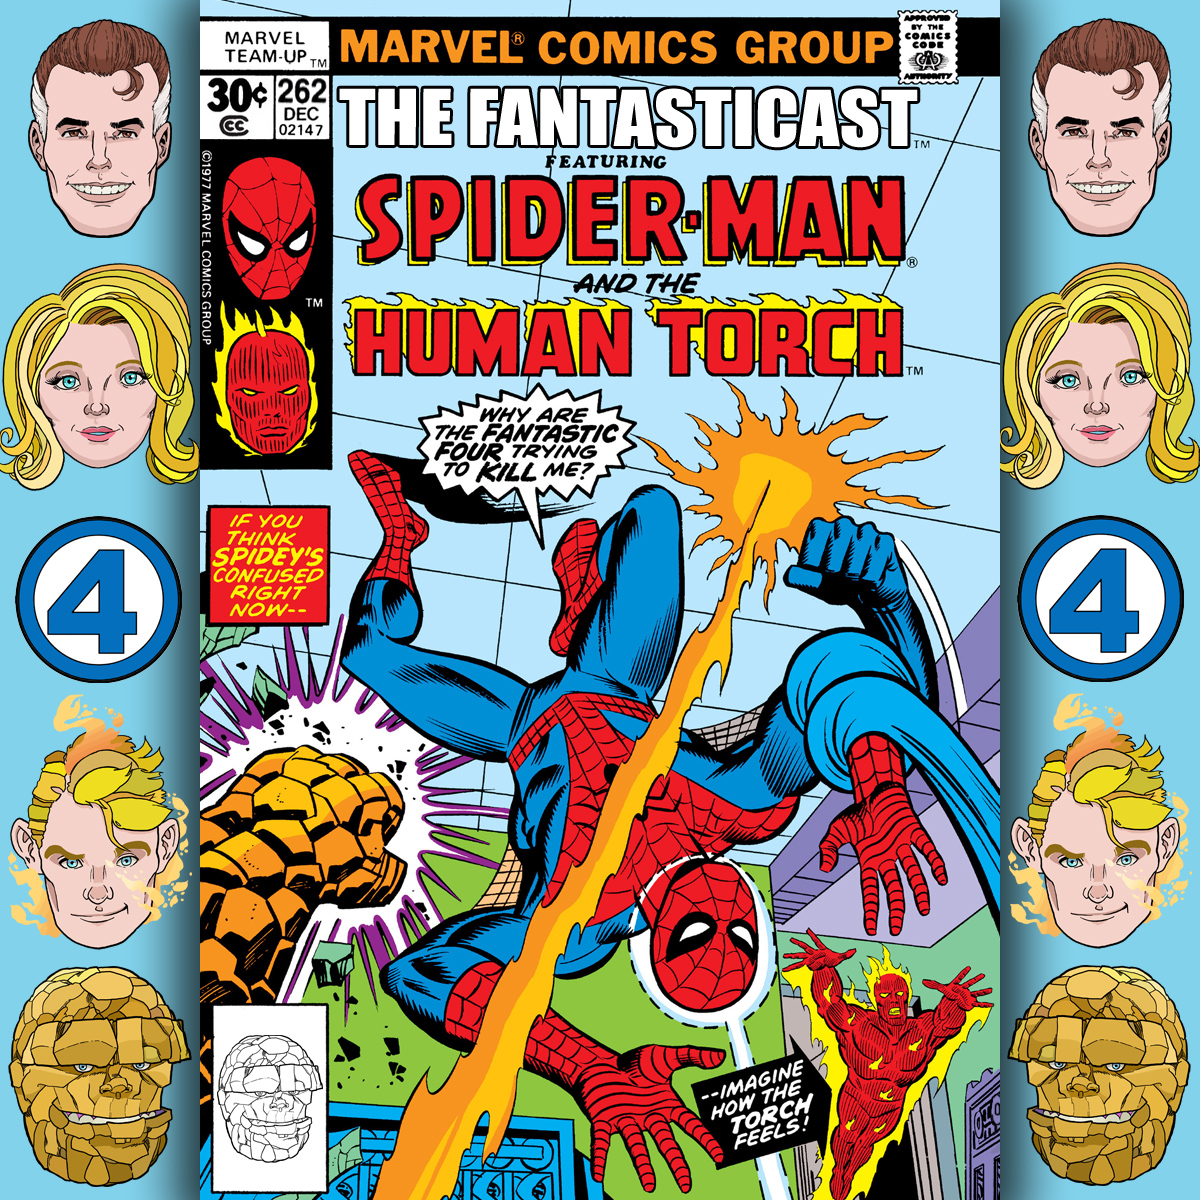 The Fantasticast Episode 262